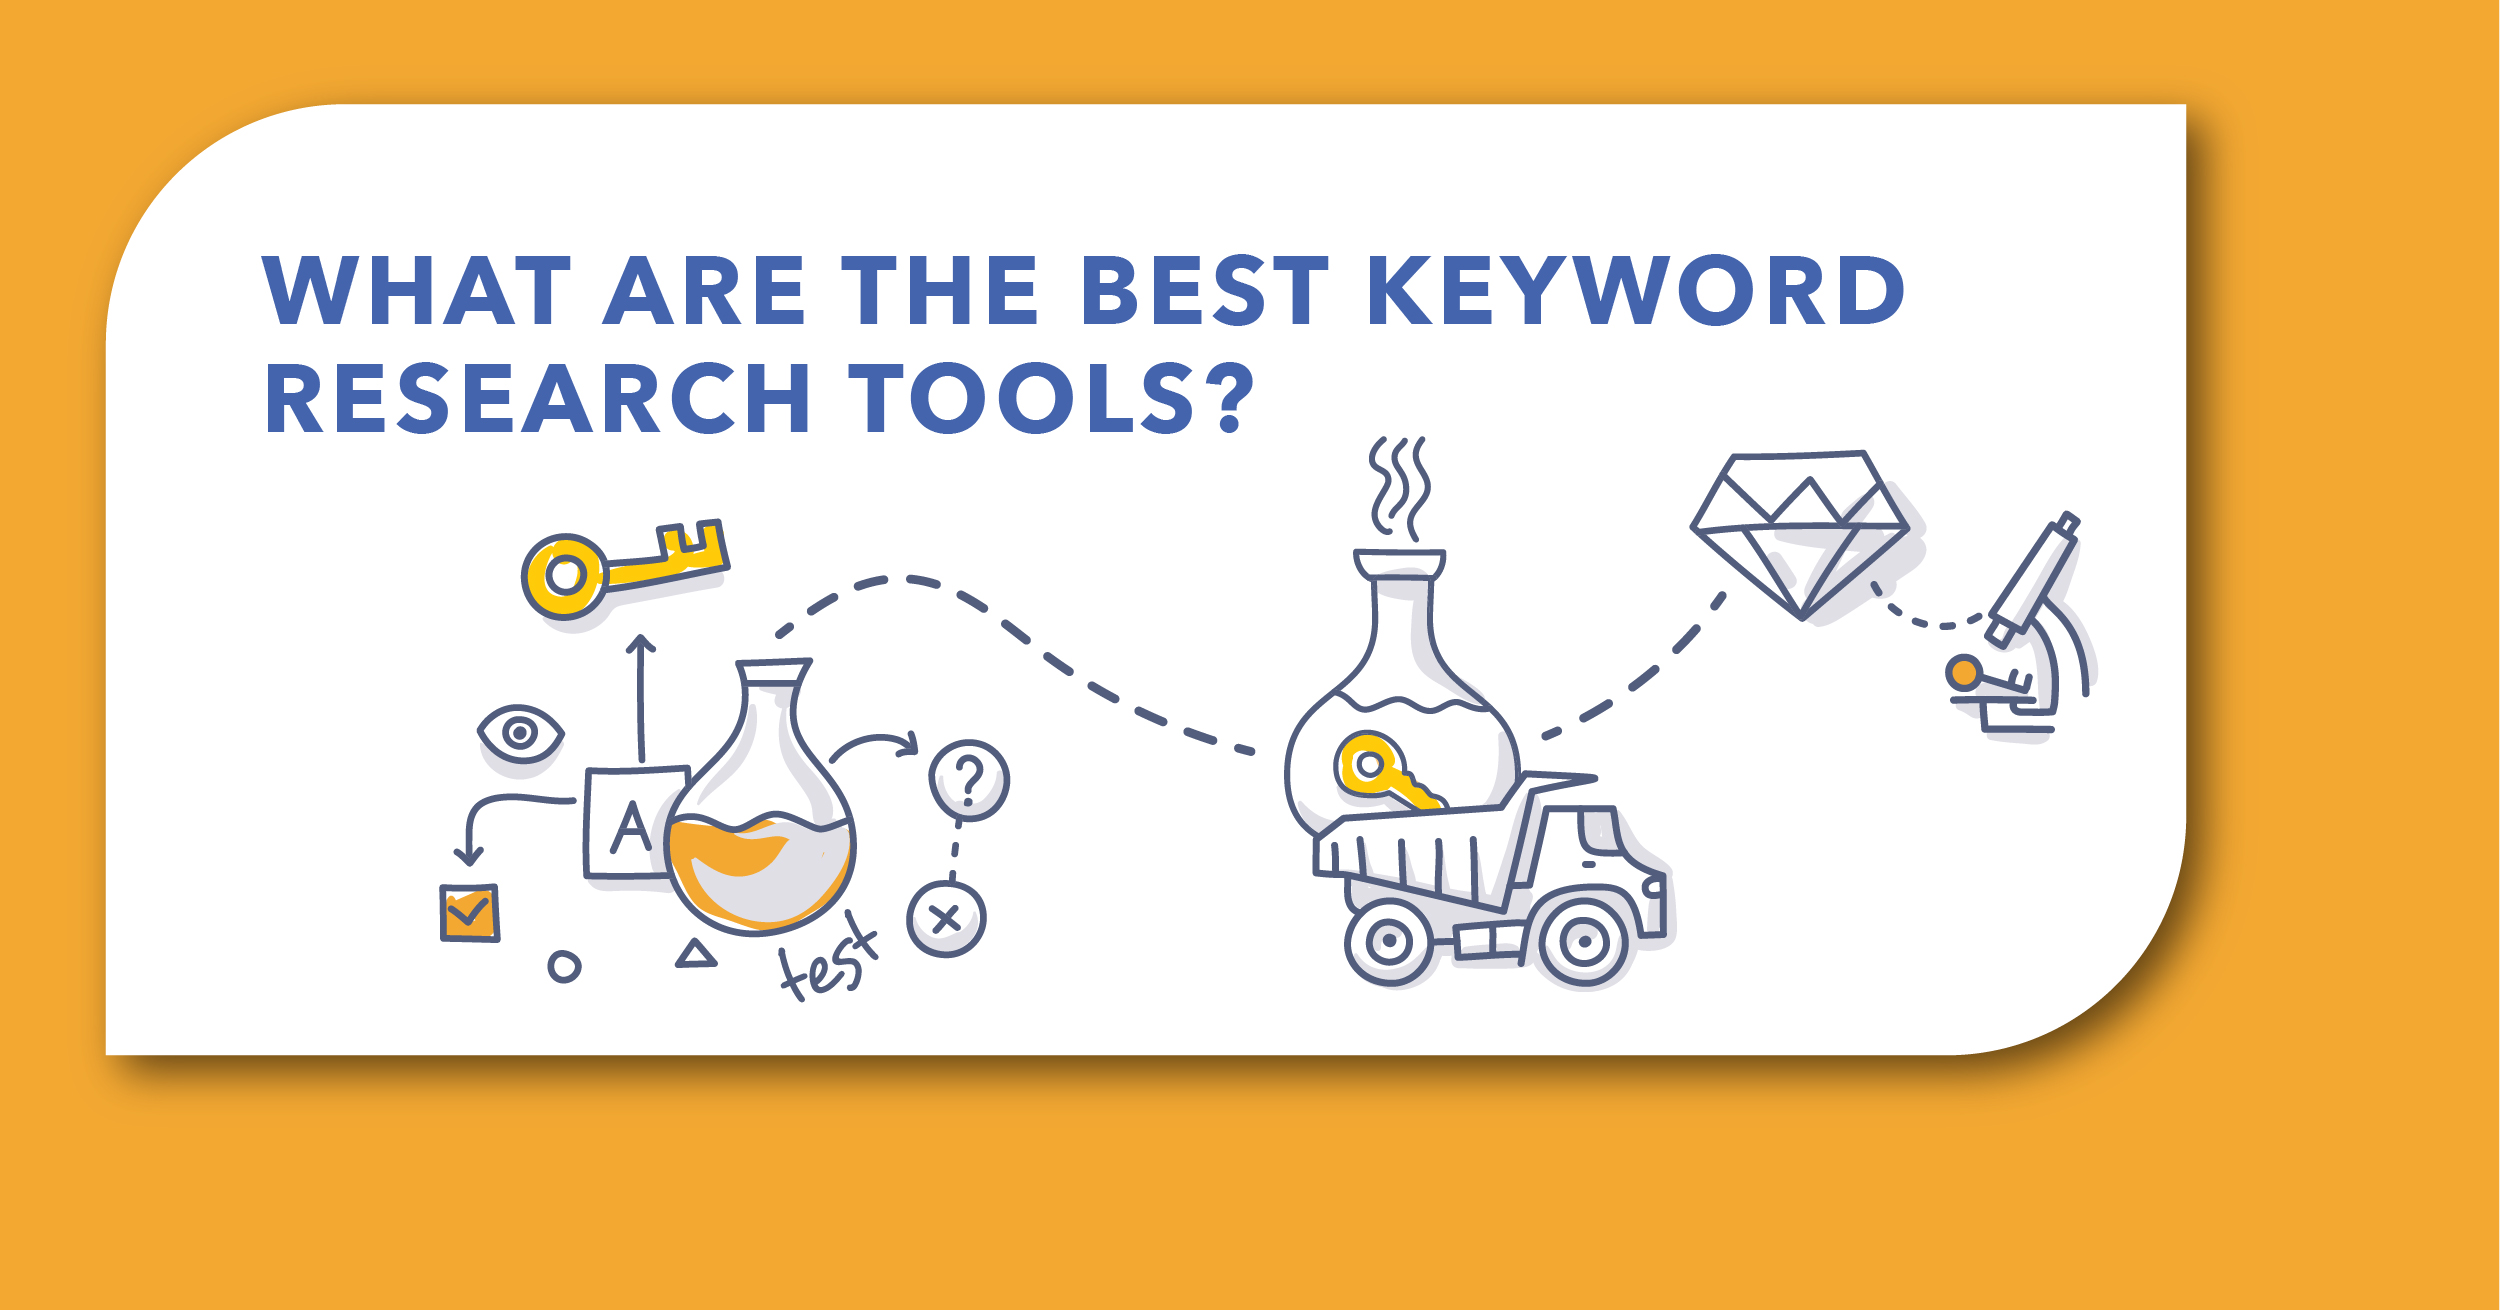 What Are the Best Keyword Research Tools? - Featured Image